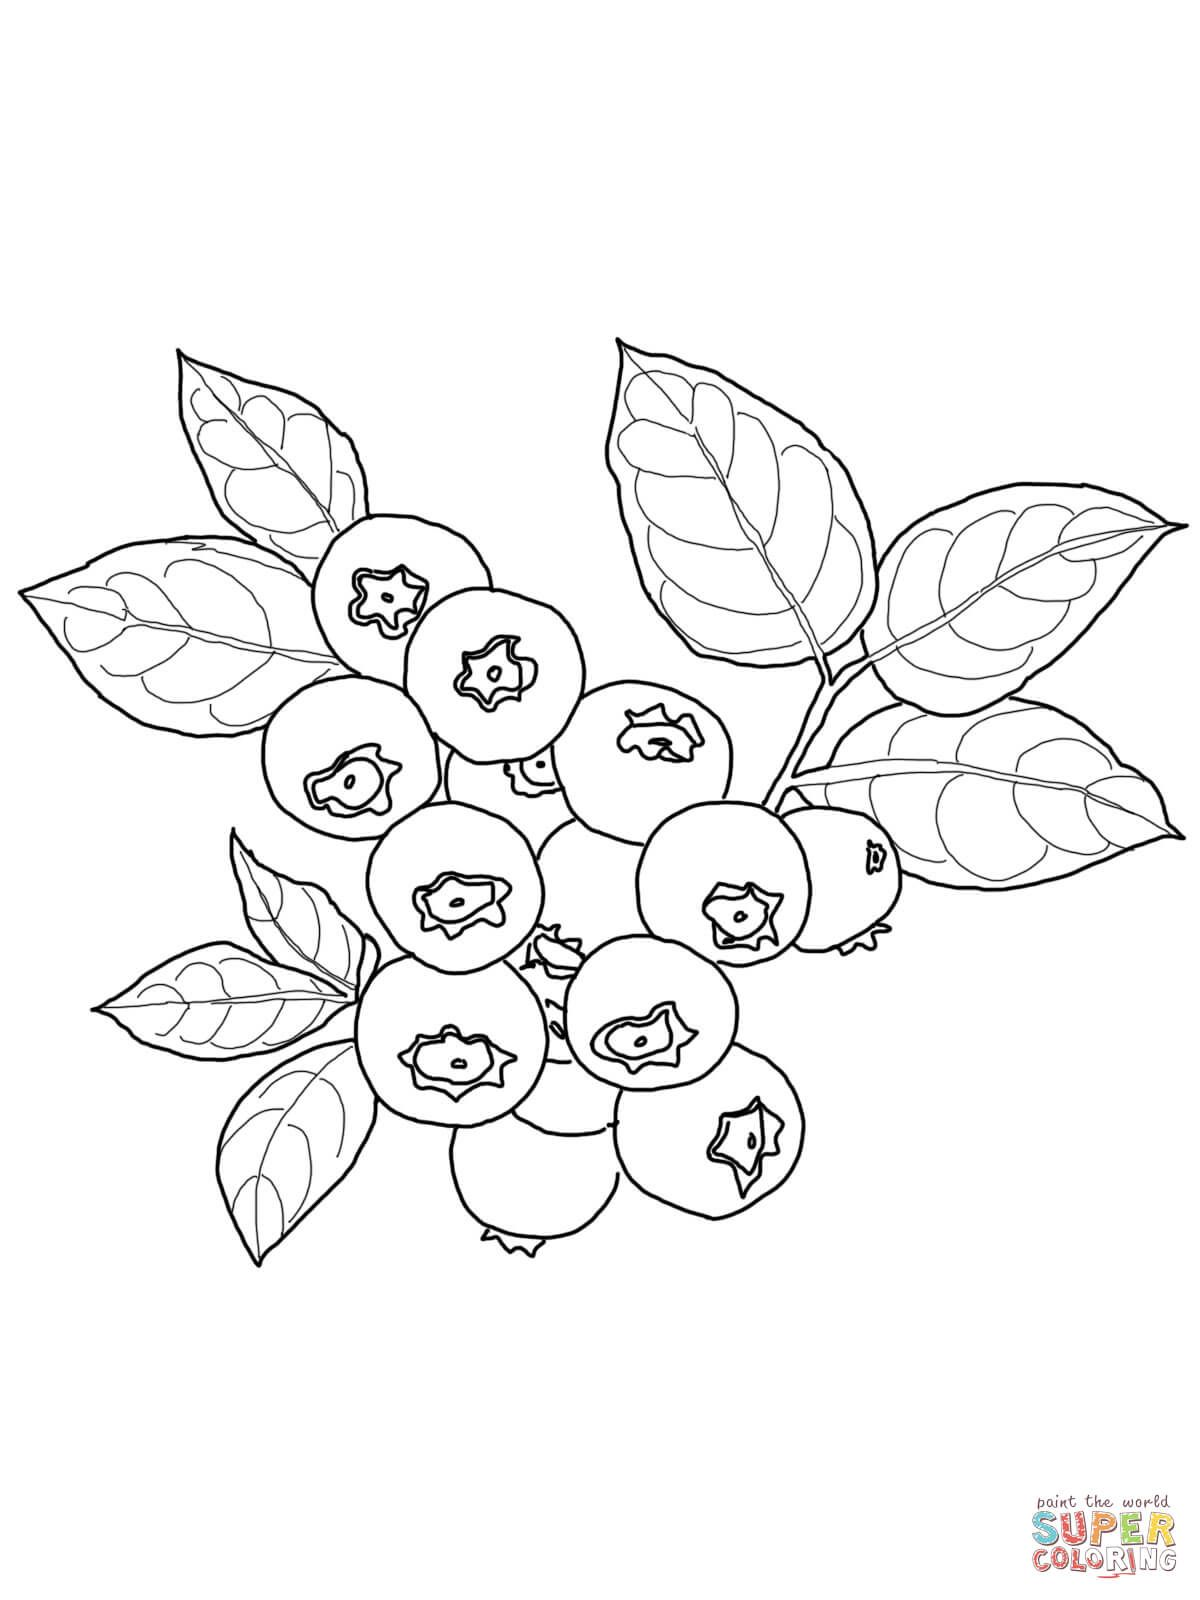 Blueberry Coloring Page From Blueberry Category Select From 26977 Printable Crafts Of Cartoons Nature Fruit Coloring Pages Coloring Pages Embroidery Patterns